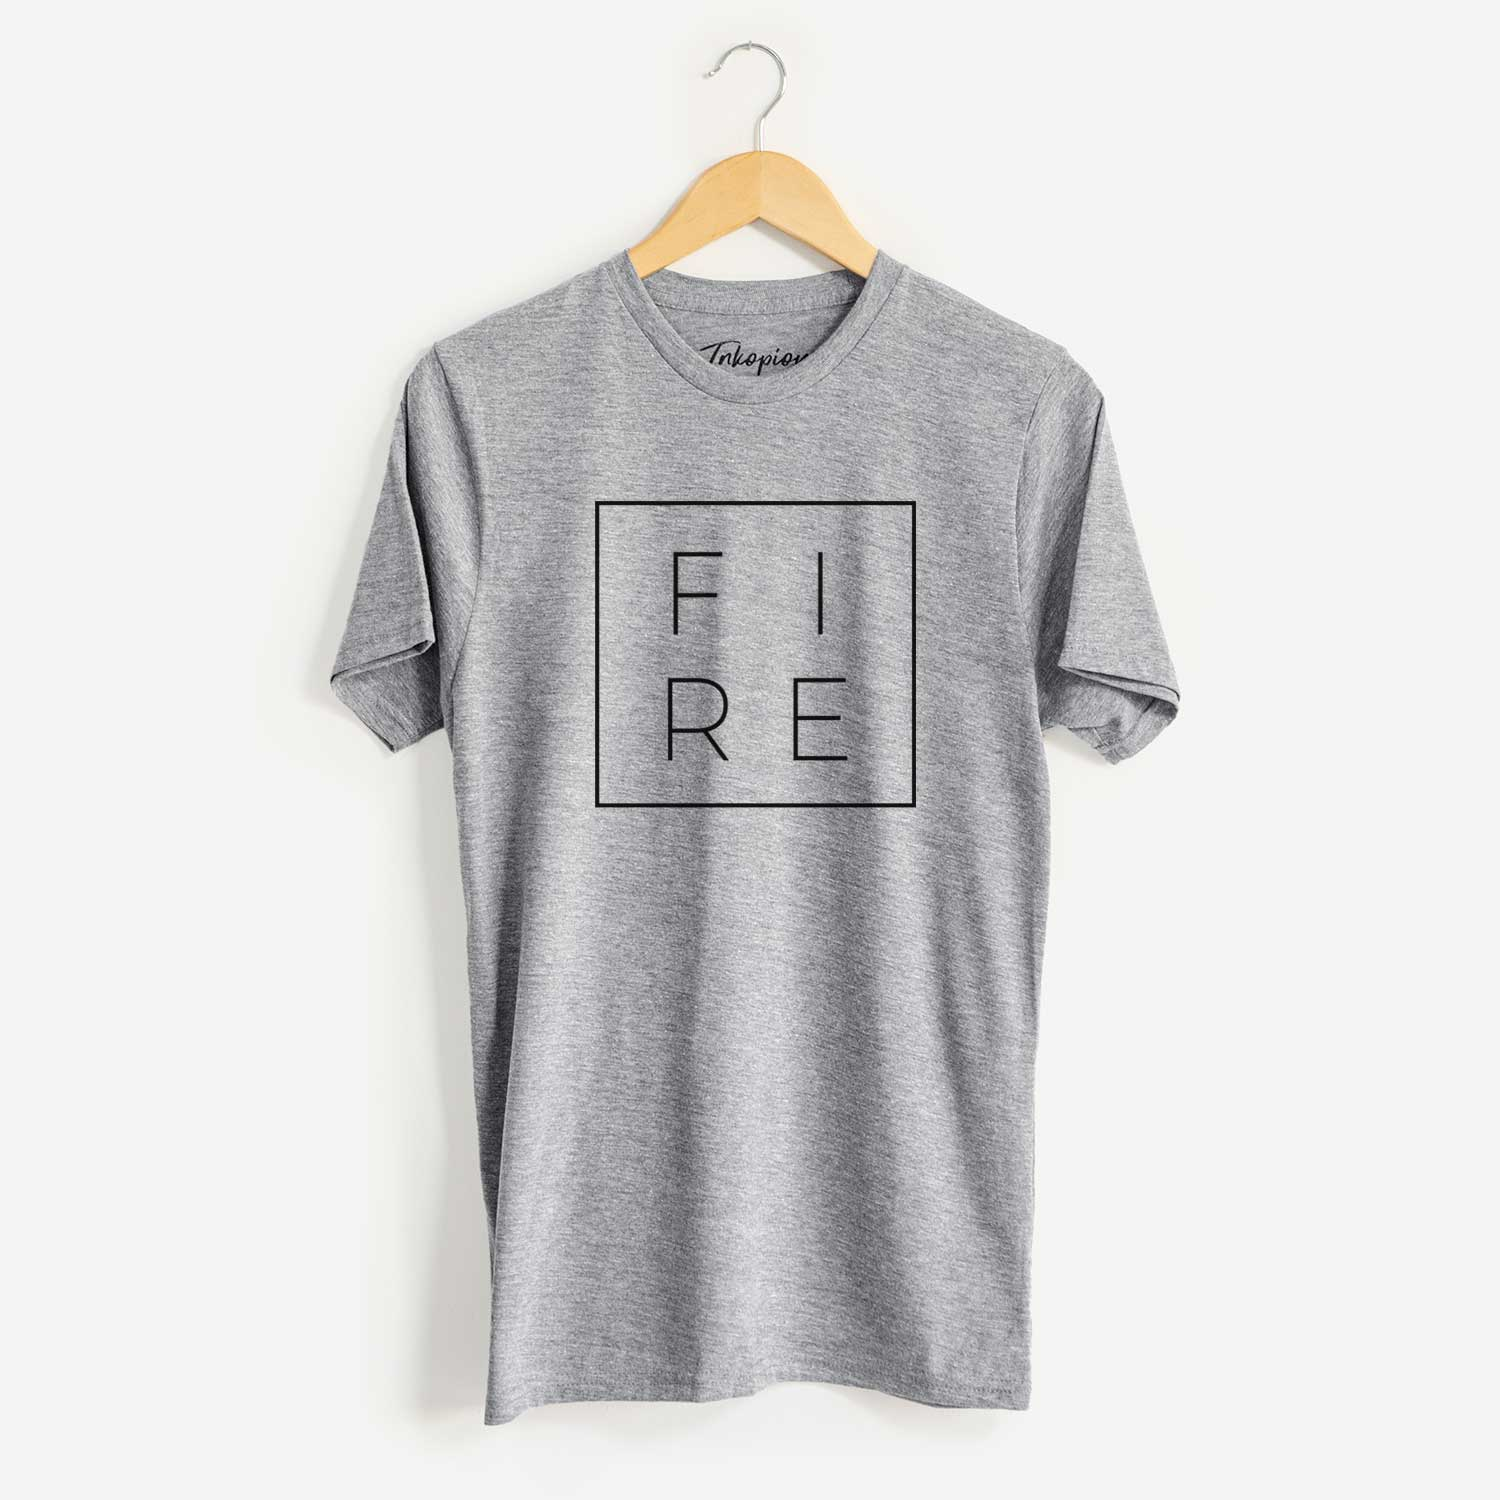 Fire Boxed  - Unisex Crewneck